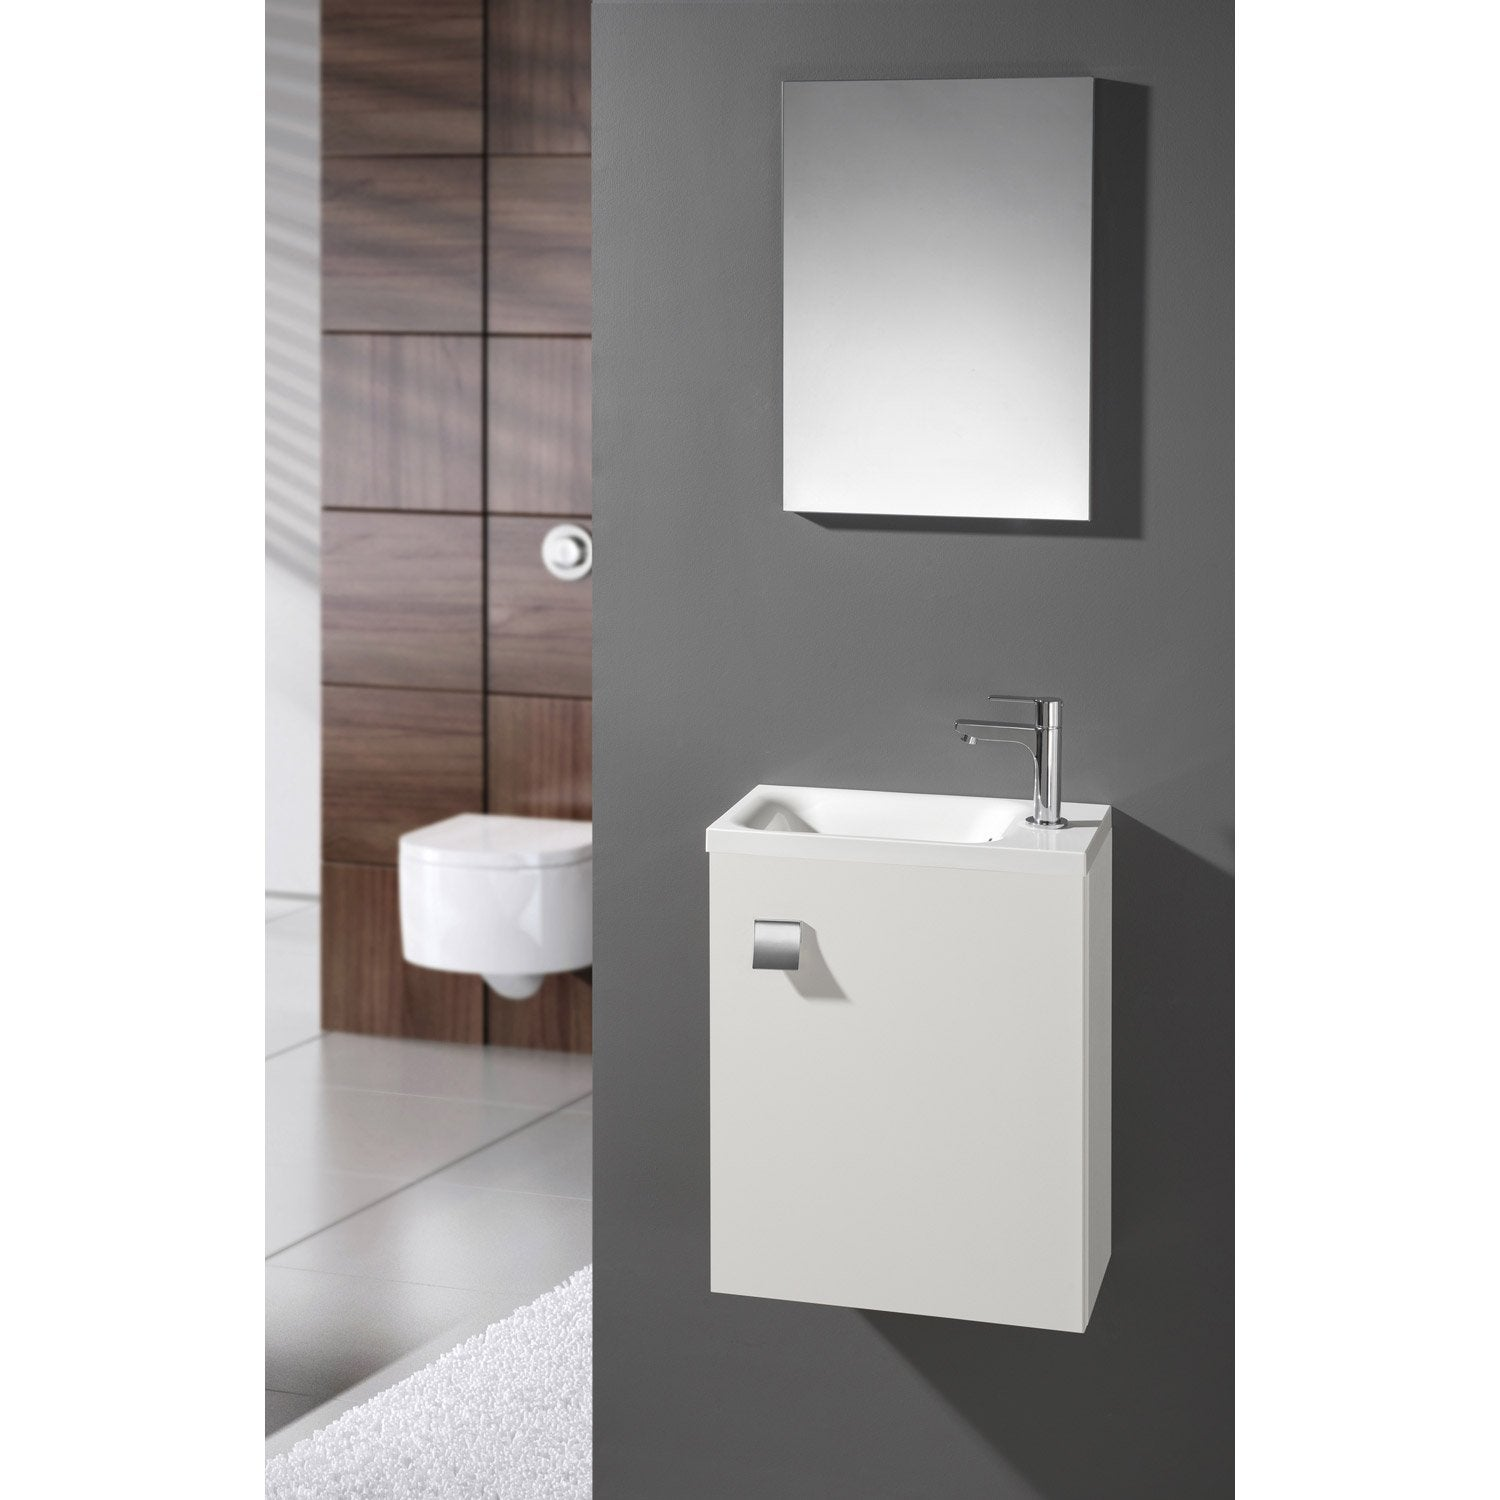 Meuble vasque toilette - Leroy merlin lave main d angle ...